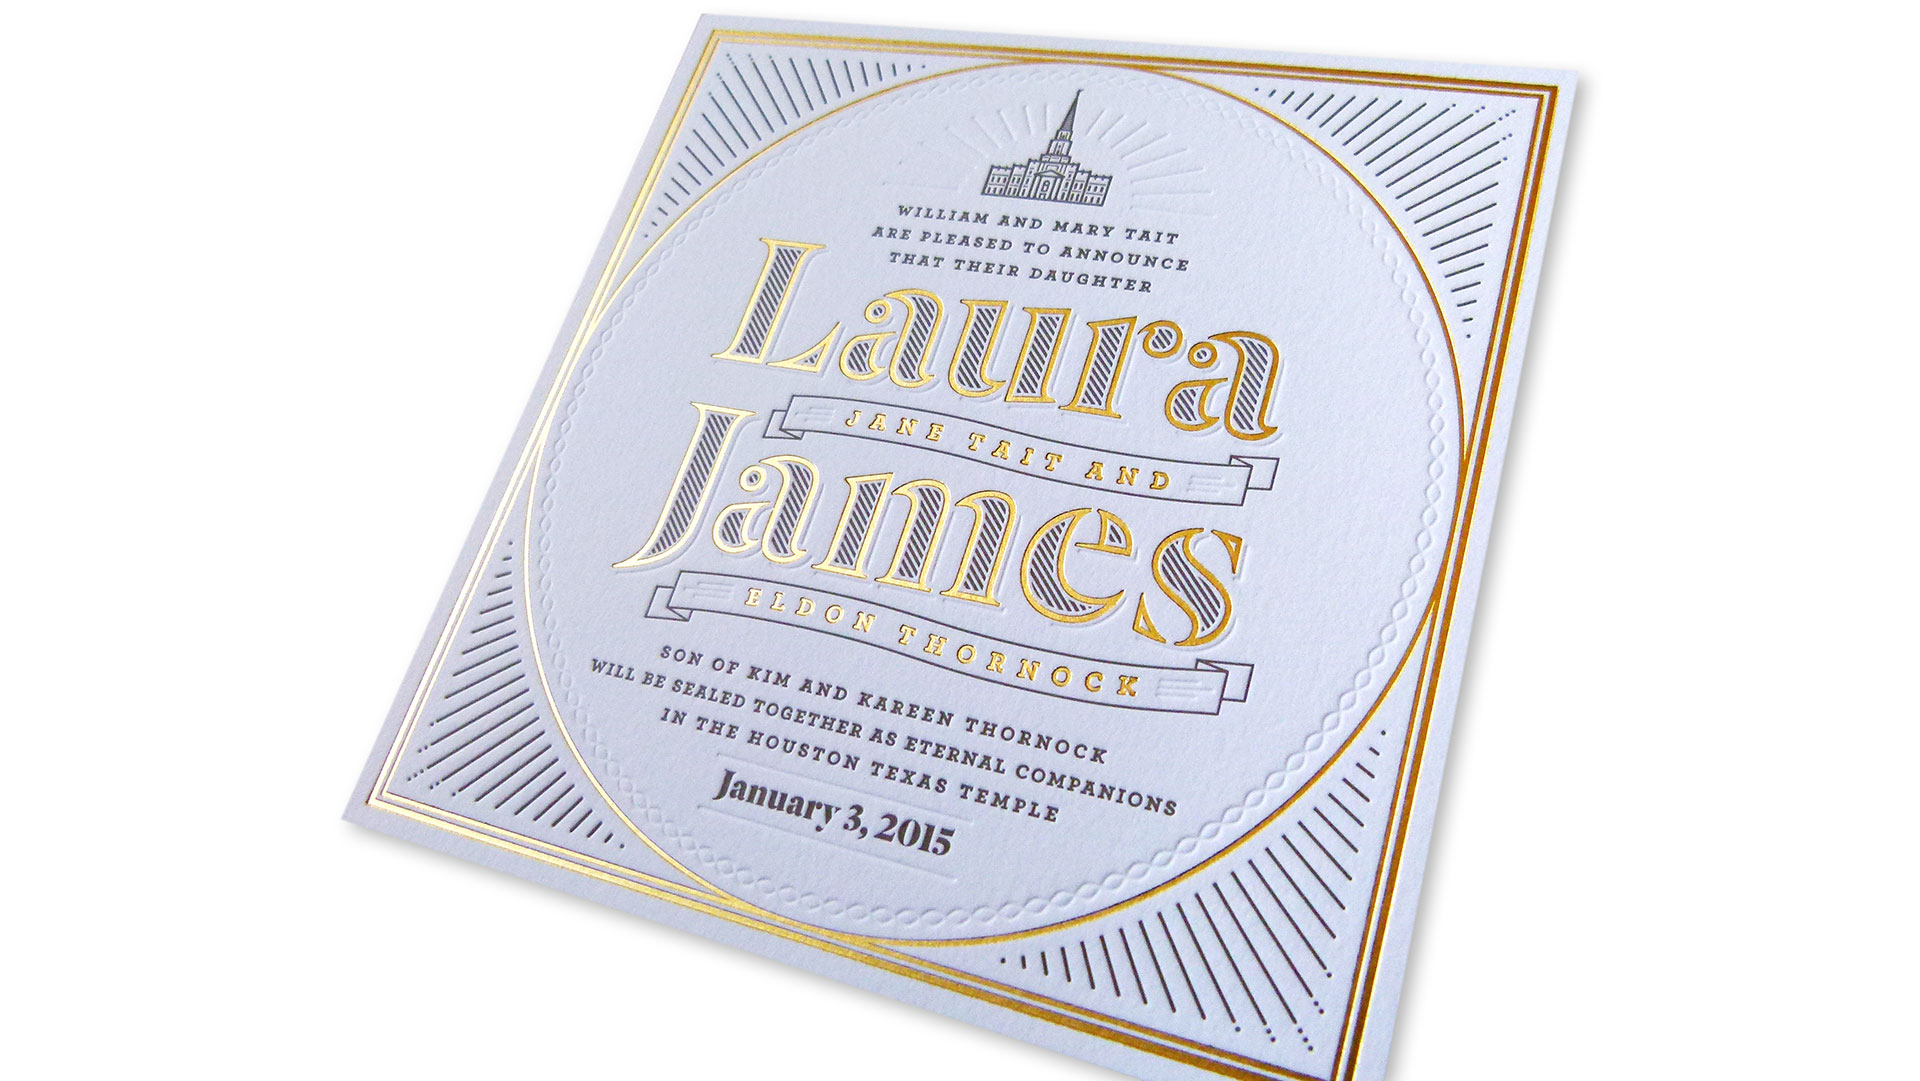 Laura + James Wedding Invitation - PaperSpecs